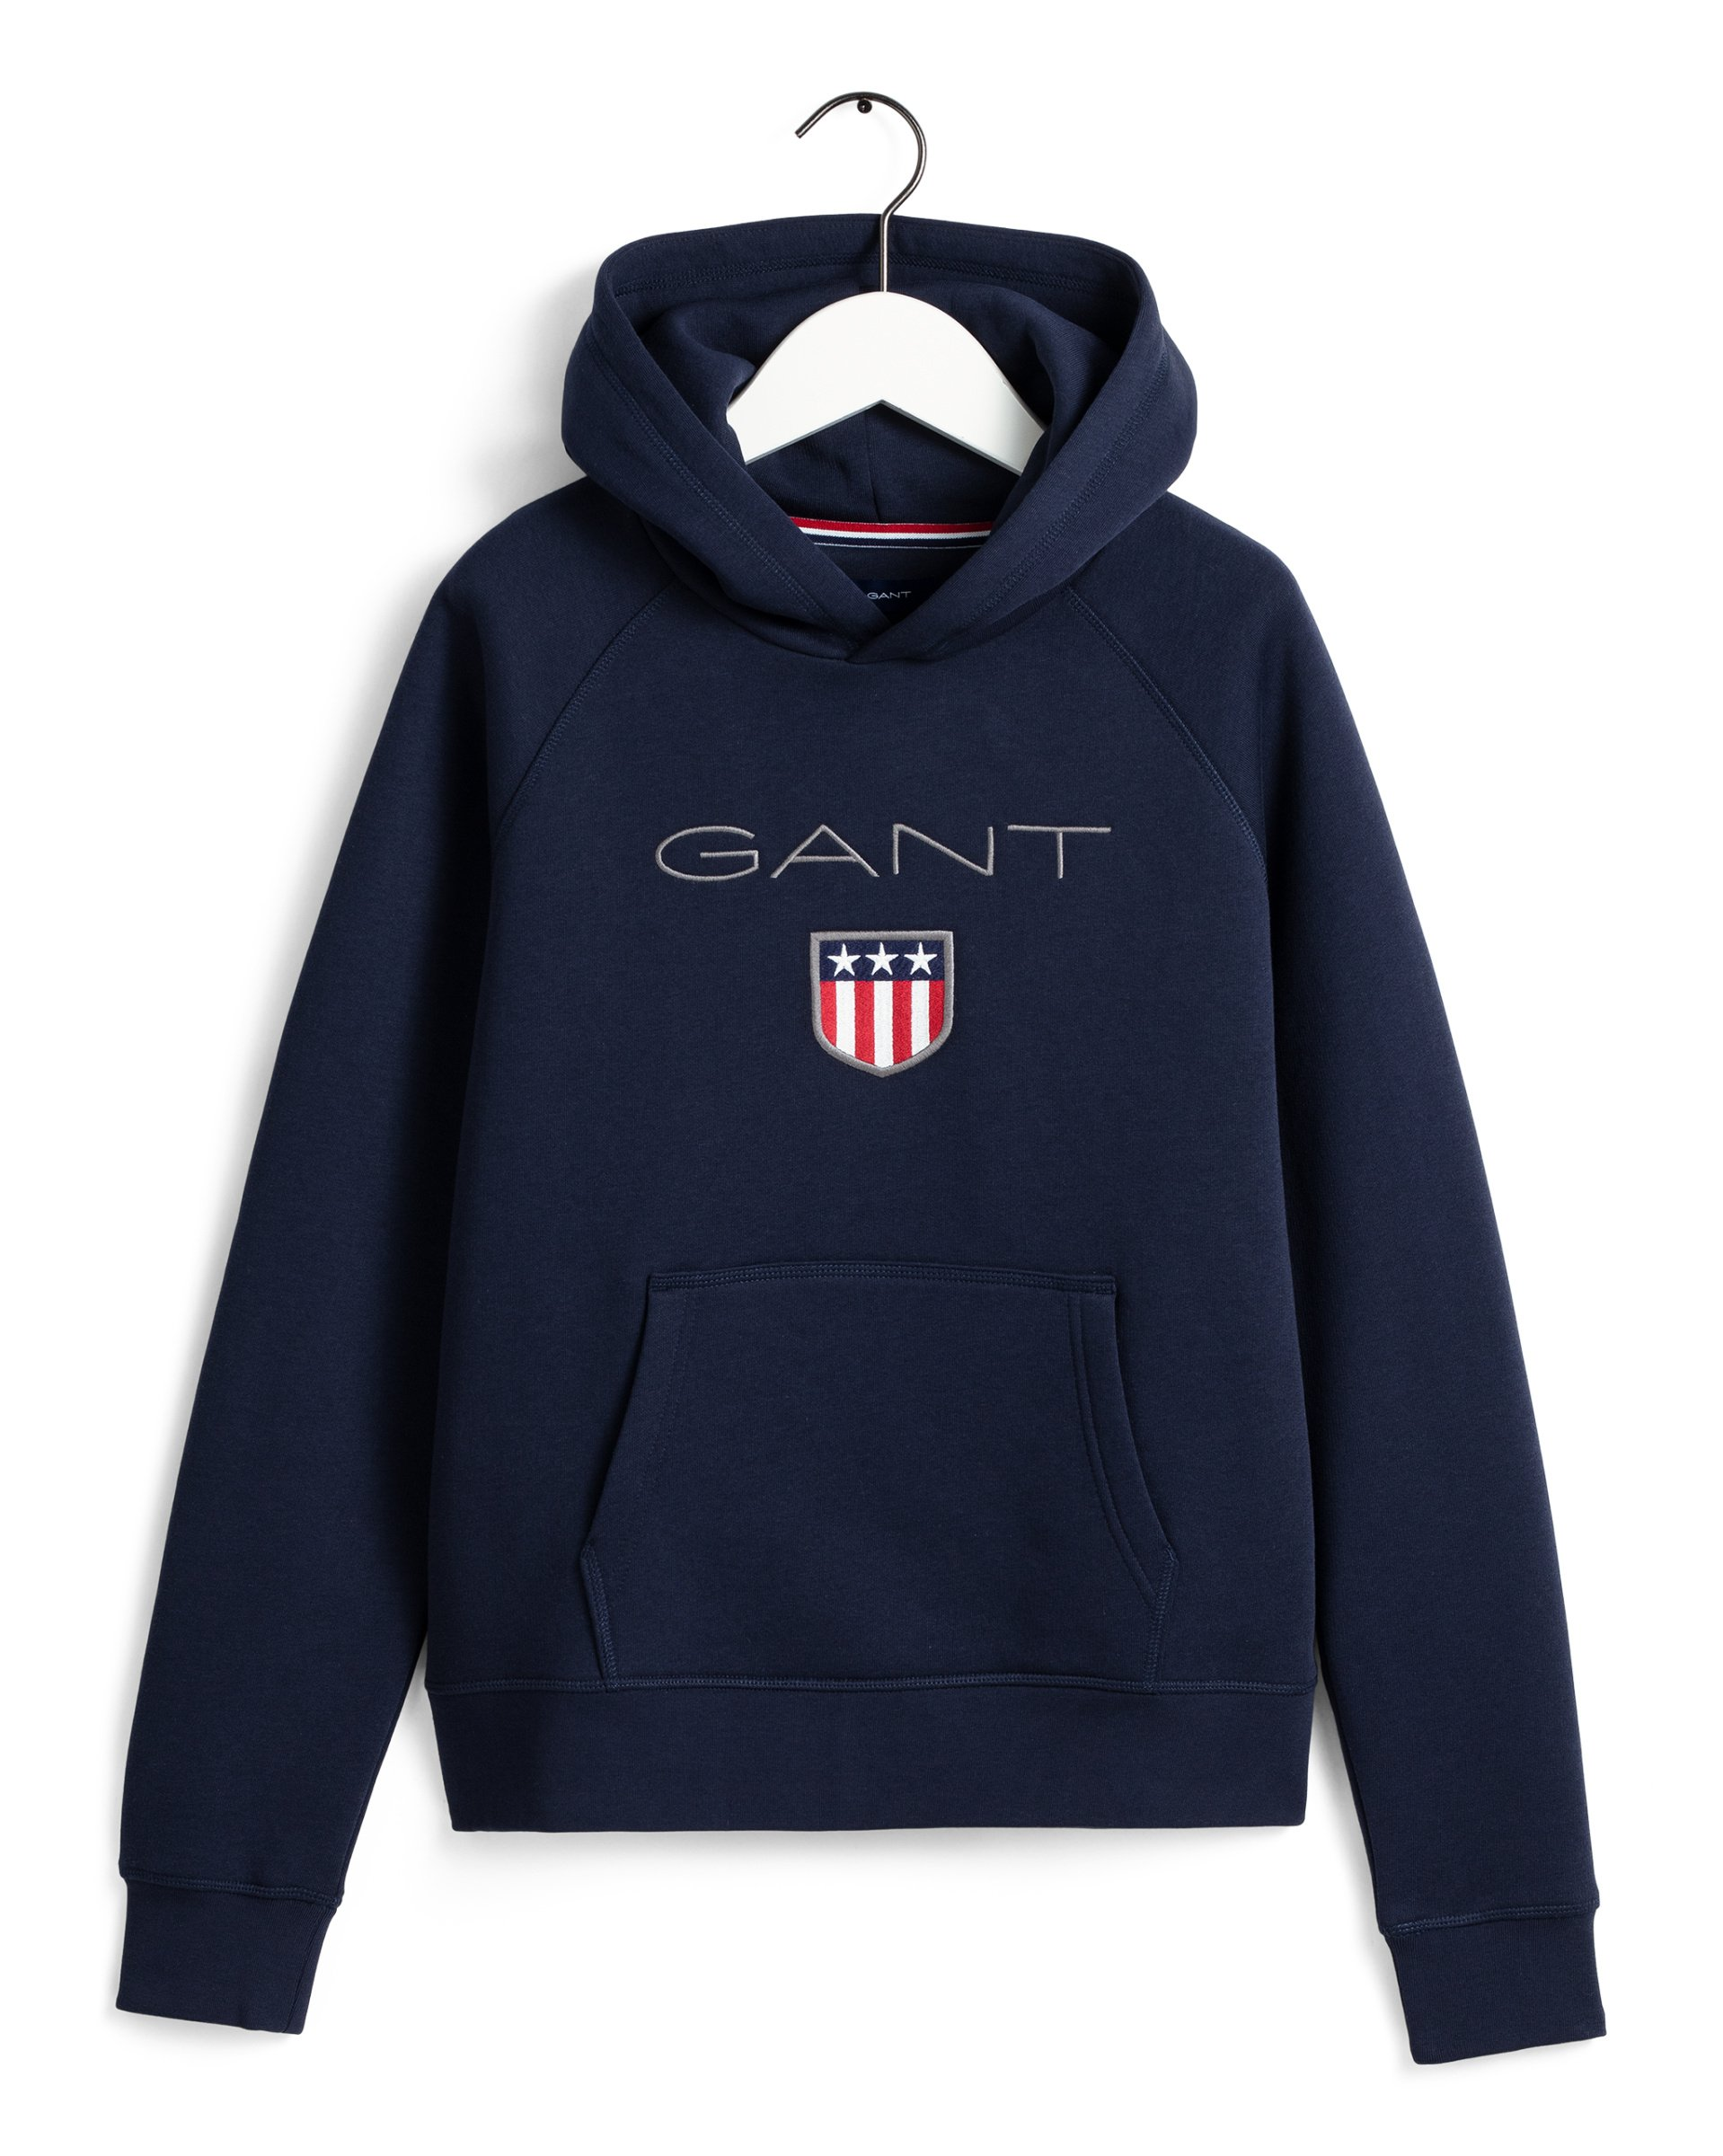 Gant, Shield Logo Sweat Huppari sininen